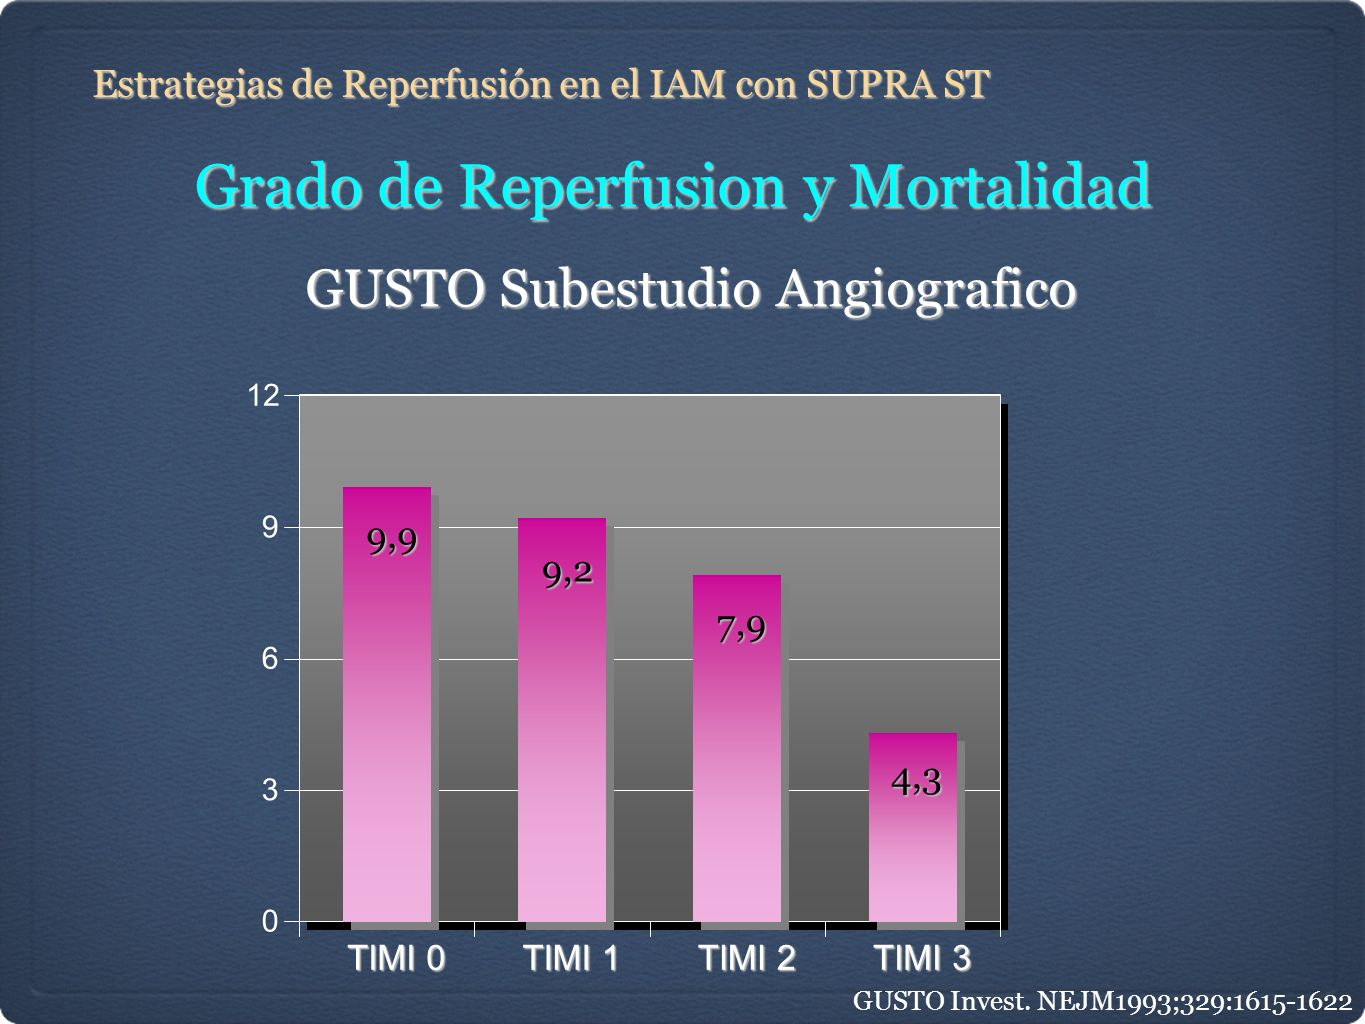 Grado de Reperfusion y Mortalidad